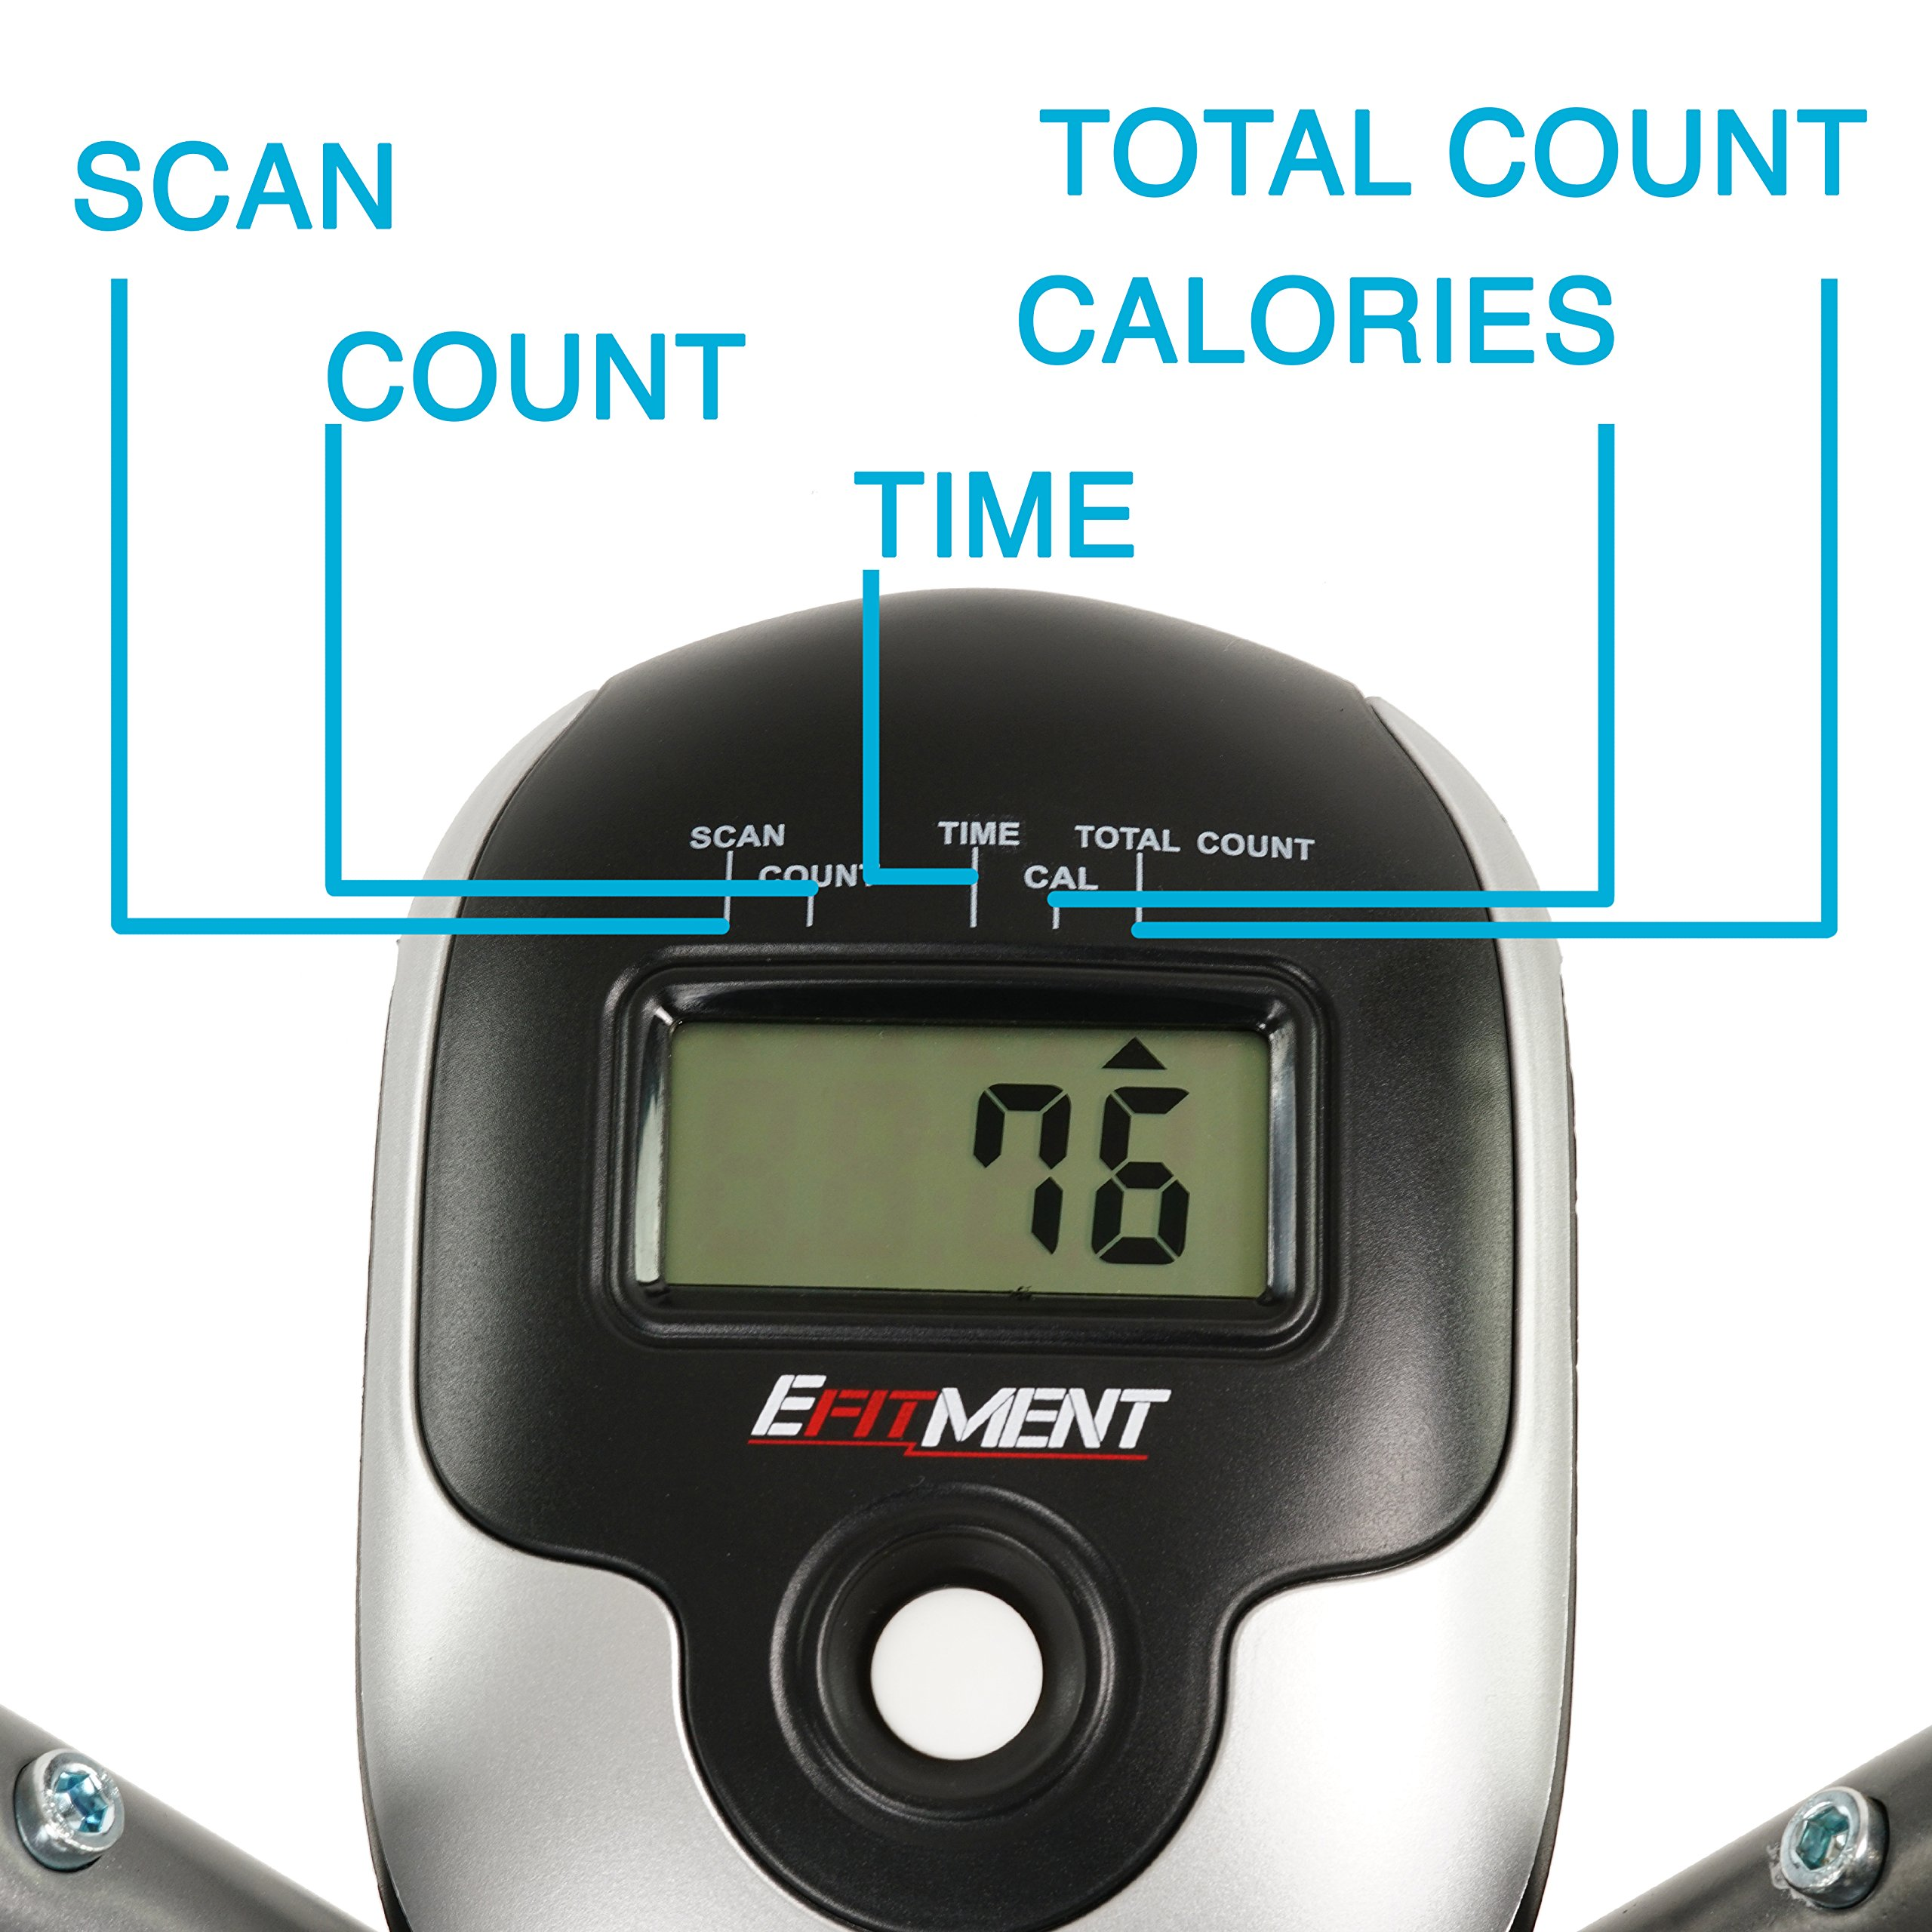 EFITMENT Air Walker Glider Elliptical Machine with Side Sway Action & 360 Motion for Exercise and Fitness - E020 by EFITMENT (Image #6)